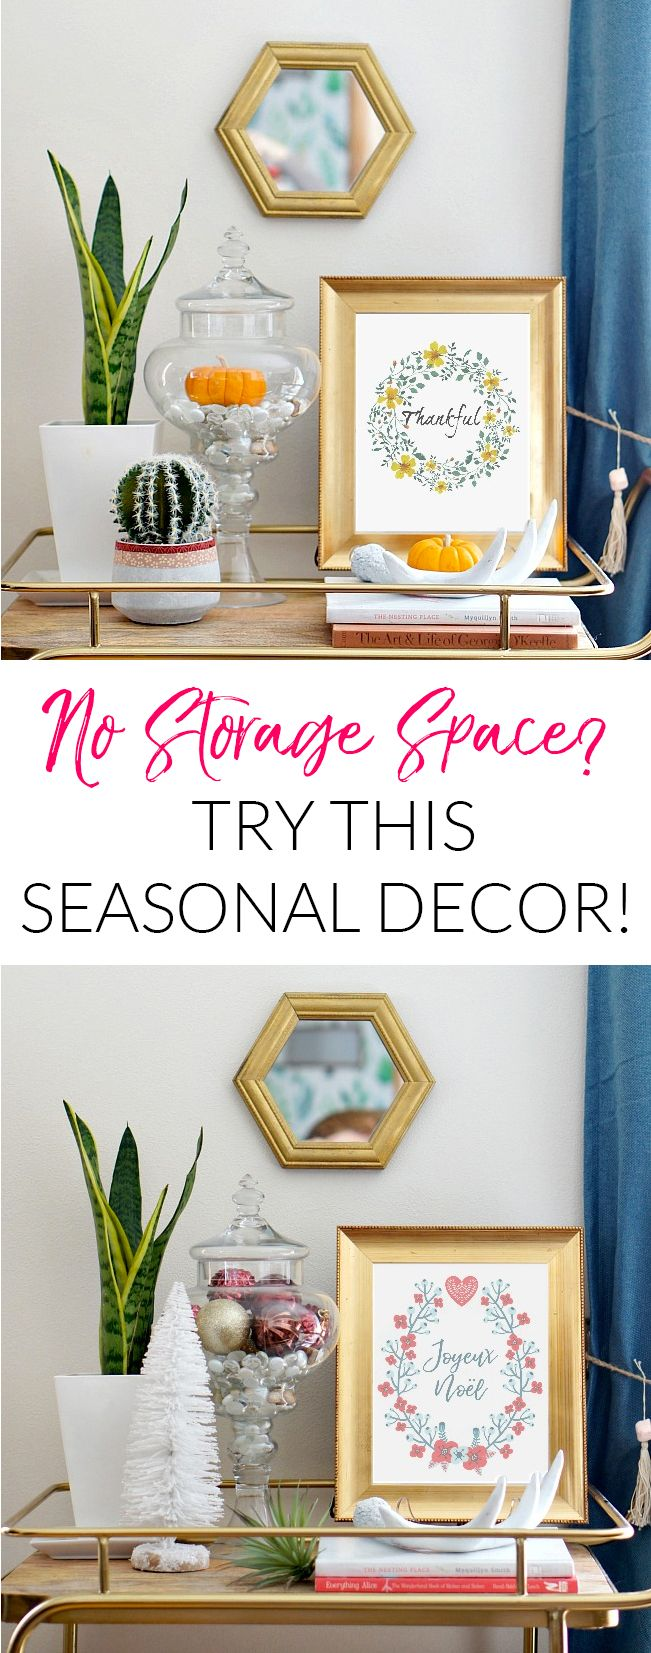 611 best Christmas & Winter images on Pinterest | Christmas crafts ...